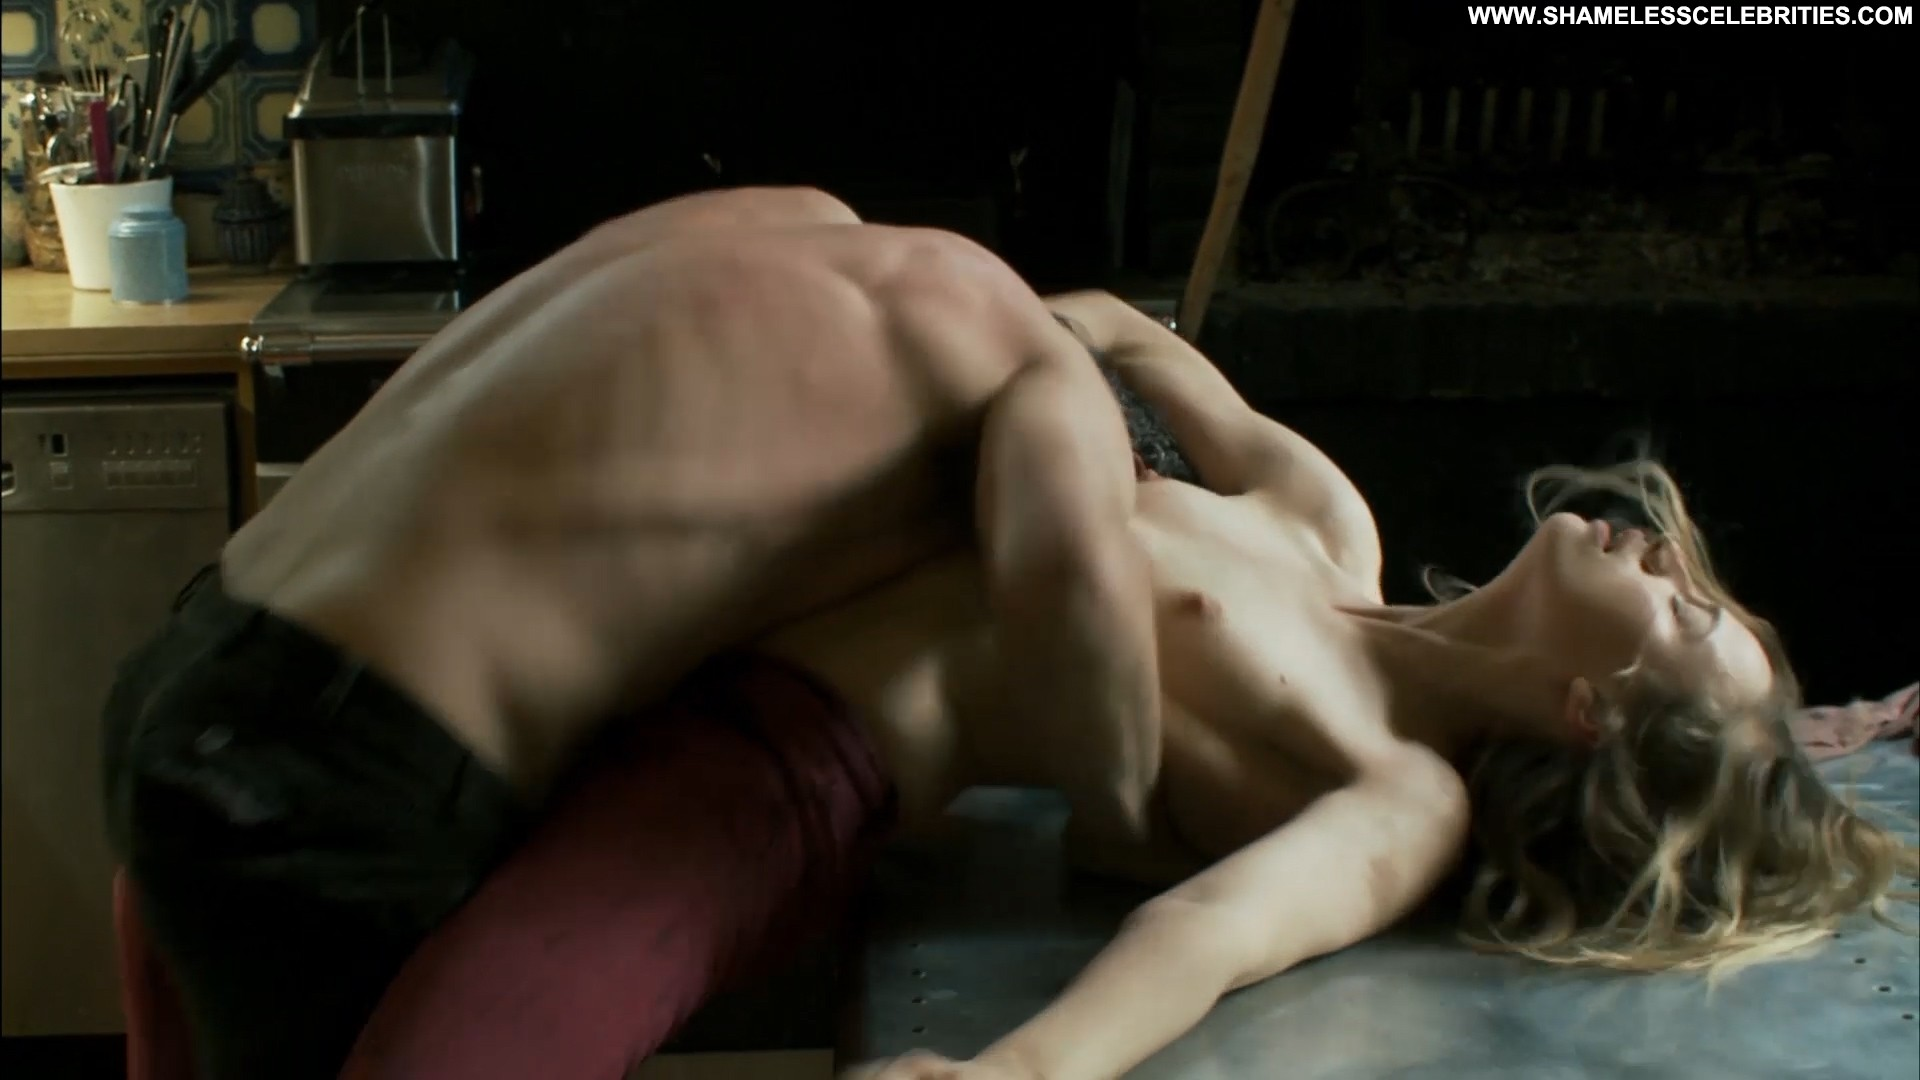 posing hot couple nude topless hot rough sex sex bush full frontal